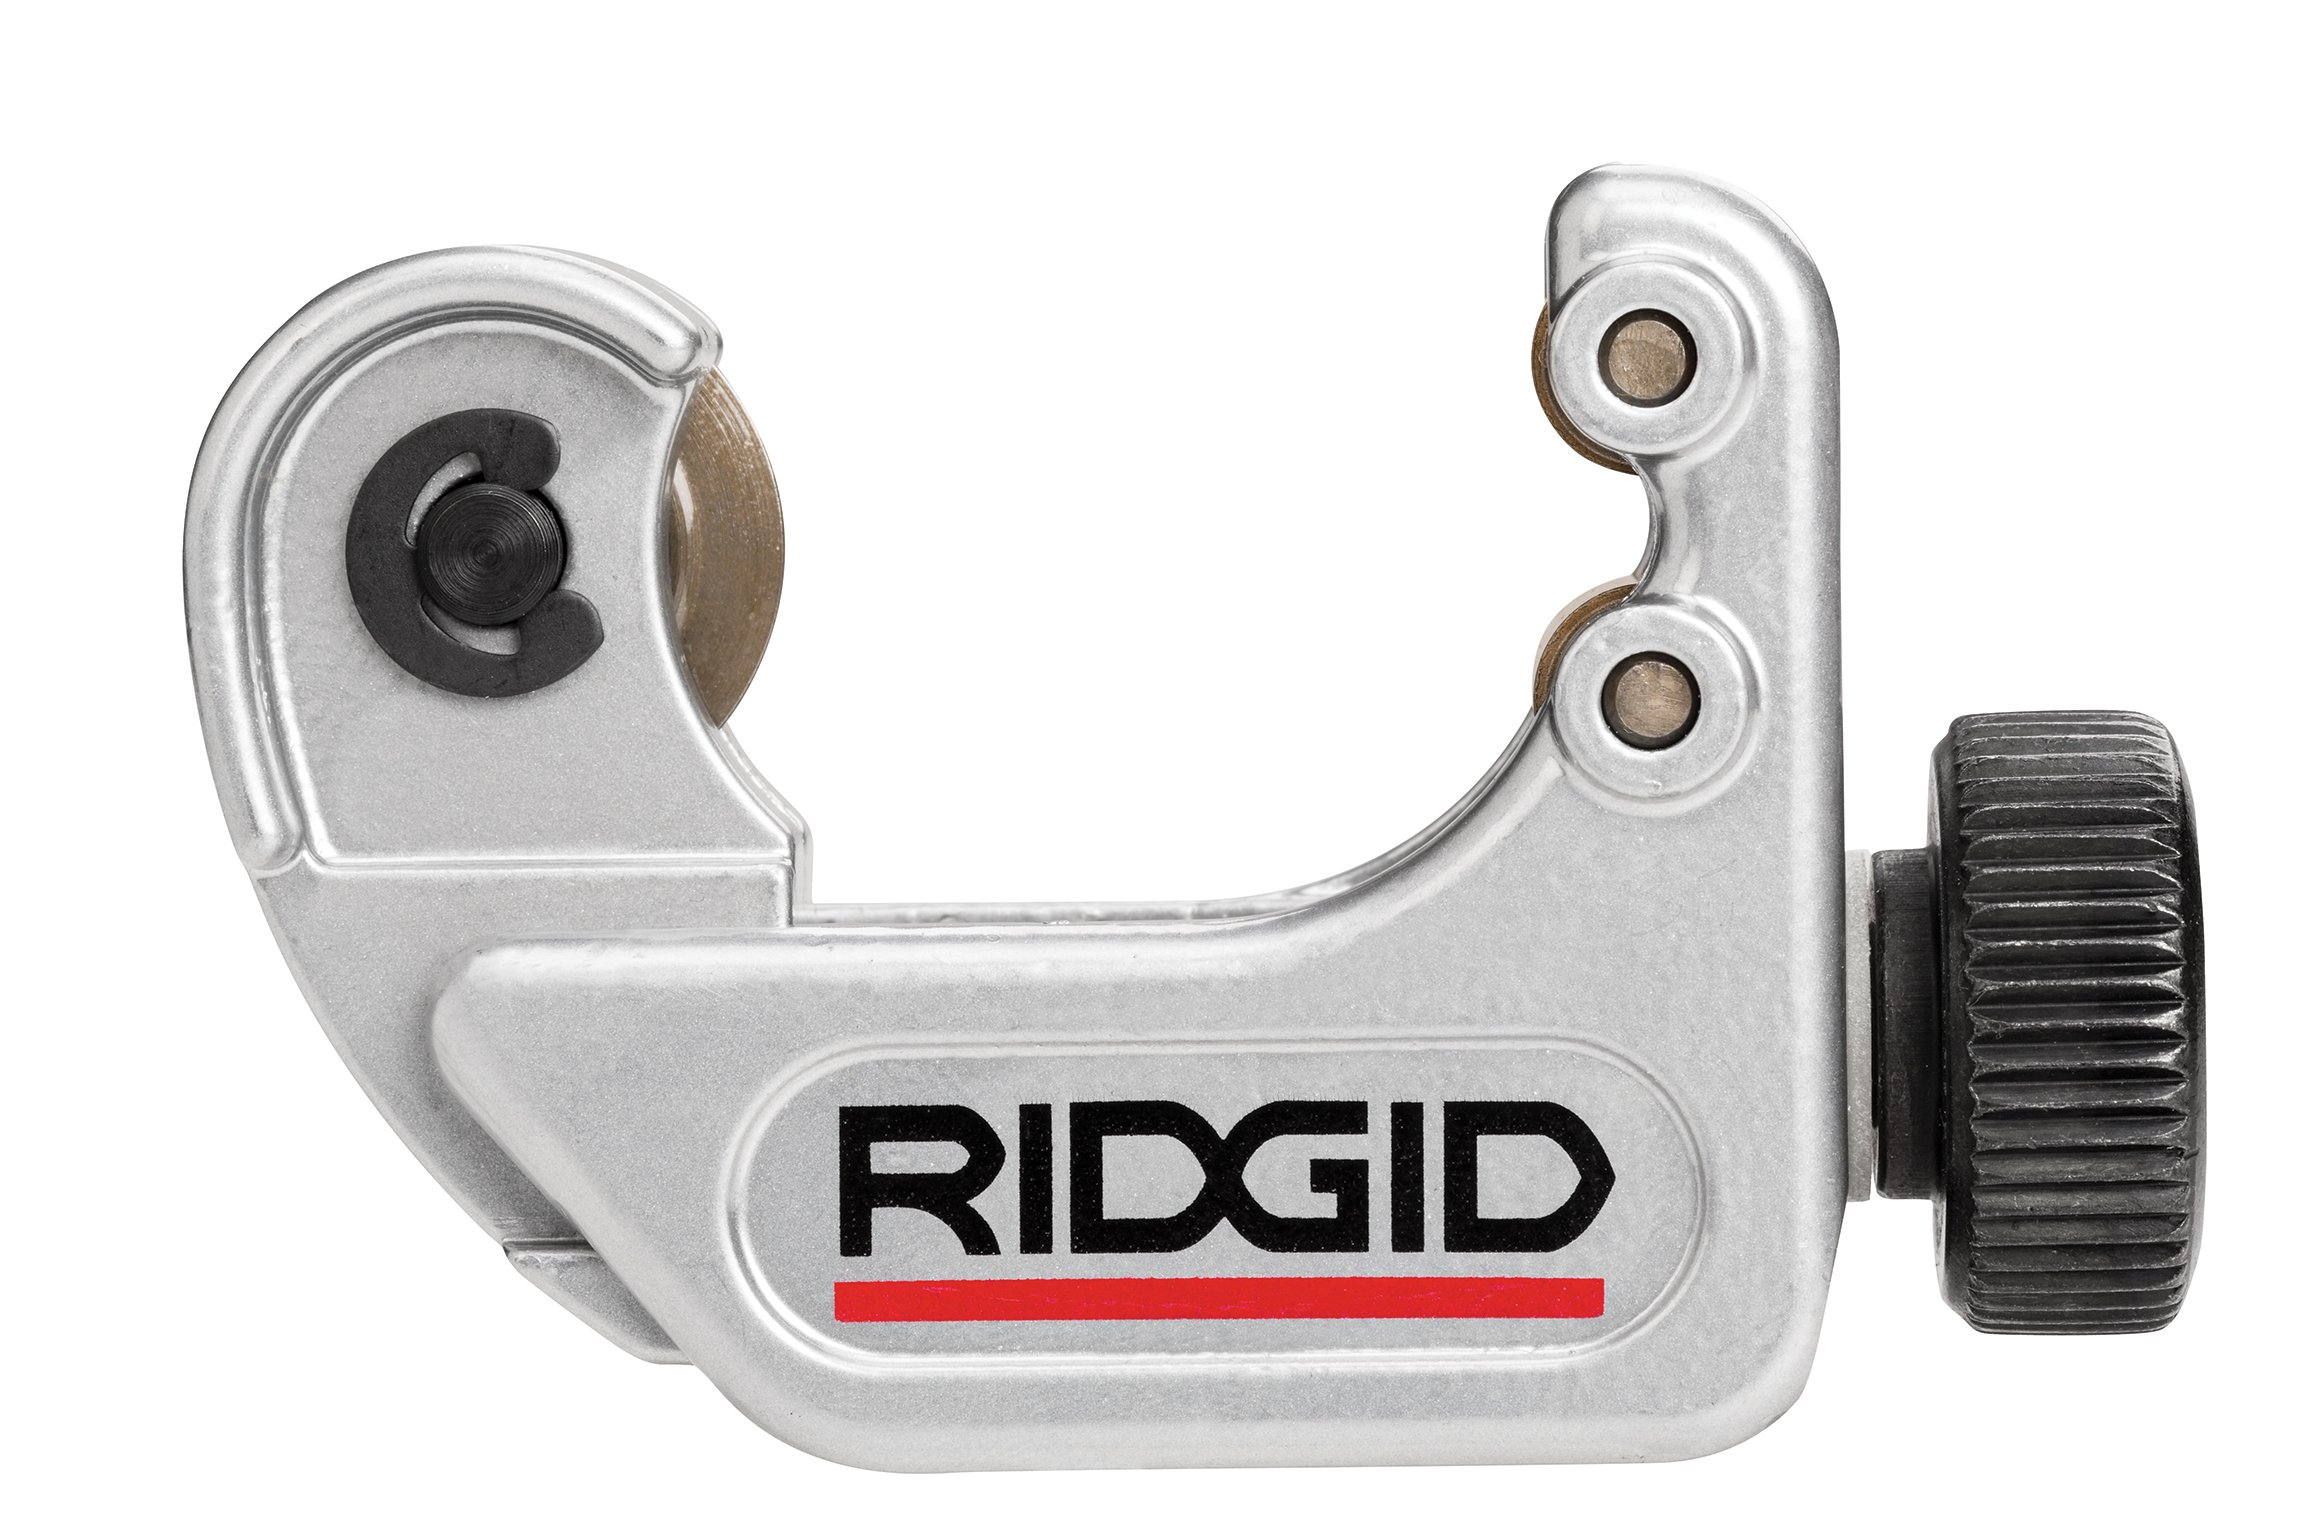 RIDGID 32985 Model 104 Close Quarters Tubing Cutter, 3/16-inch to 15/16-inch Tube Cutter by Ridgid (Image #1)